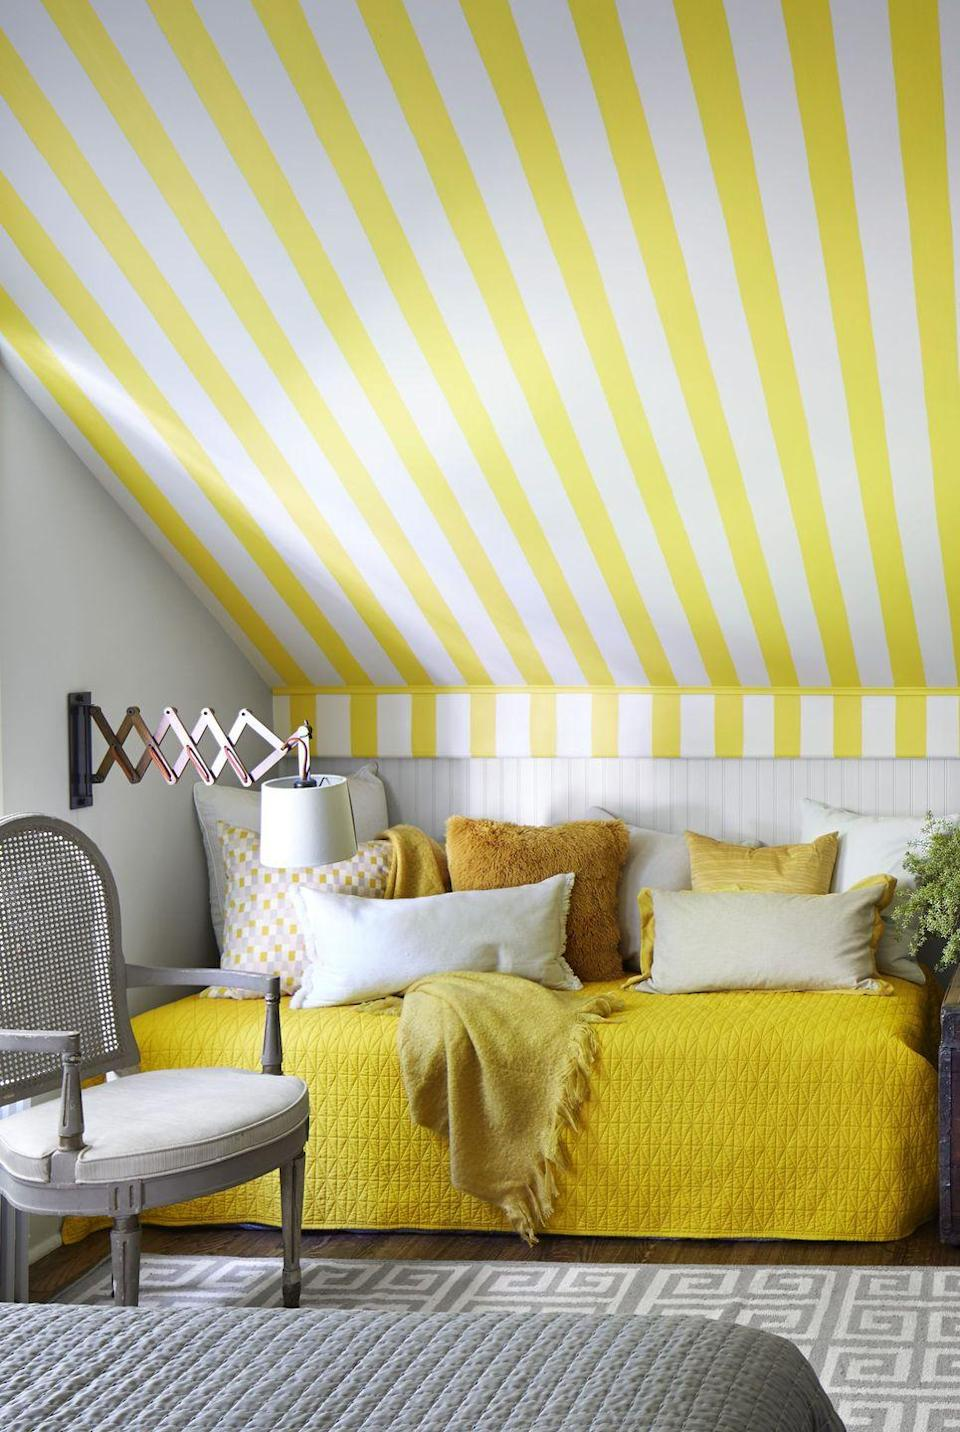 <p>Here's proof that you can be bold and bright while still maintaining a clean, sophisticated aesthetic. The yellow stripes on the ceiling make the whole room pop, while the grays mellow things out just a touch. We also love the idea of putting a bed in the corner, where it feels more private and cozy. </p>